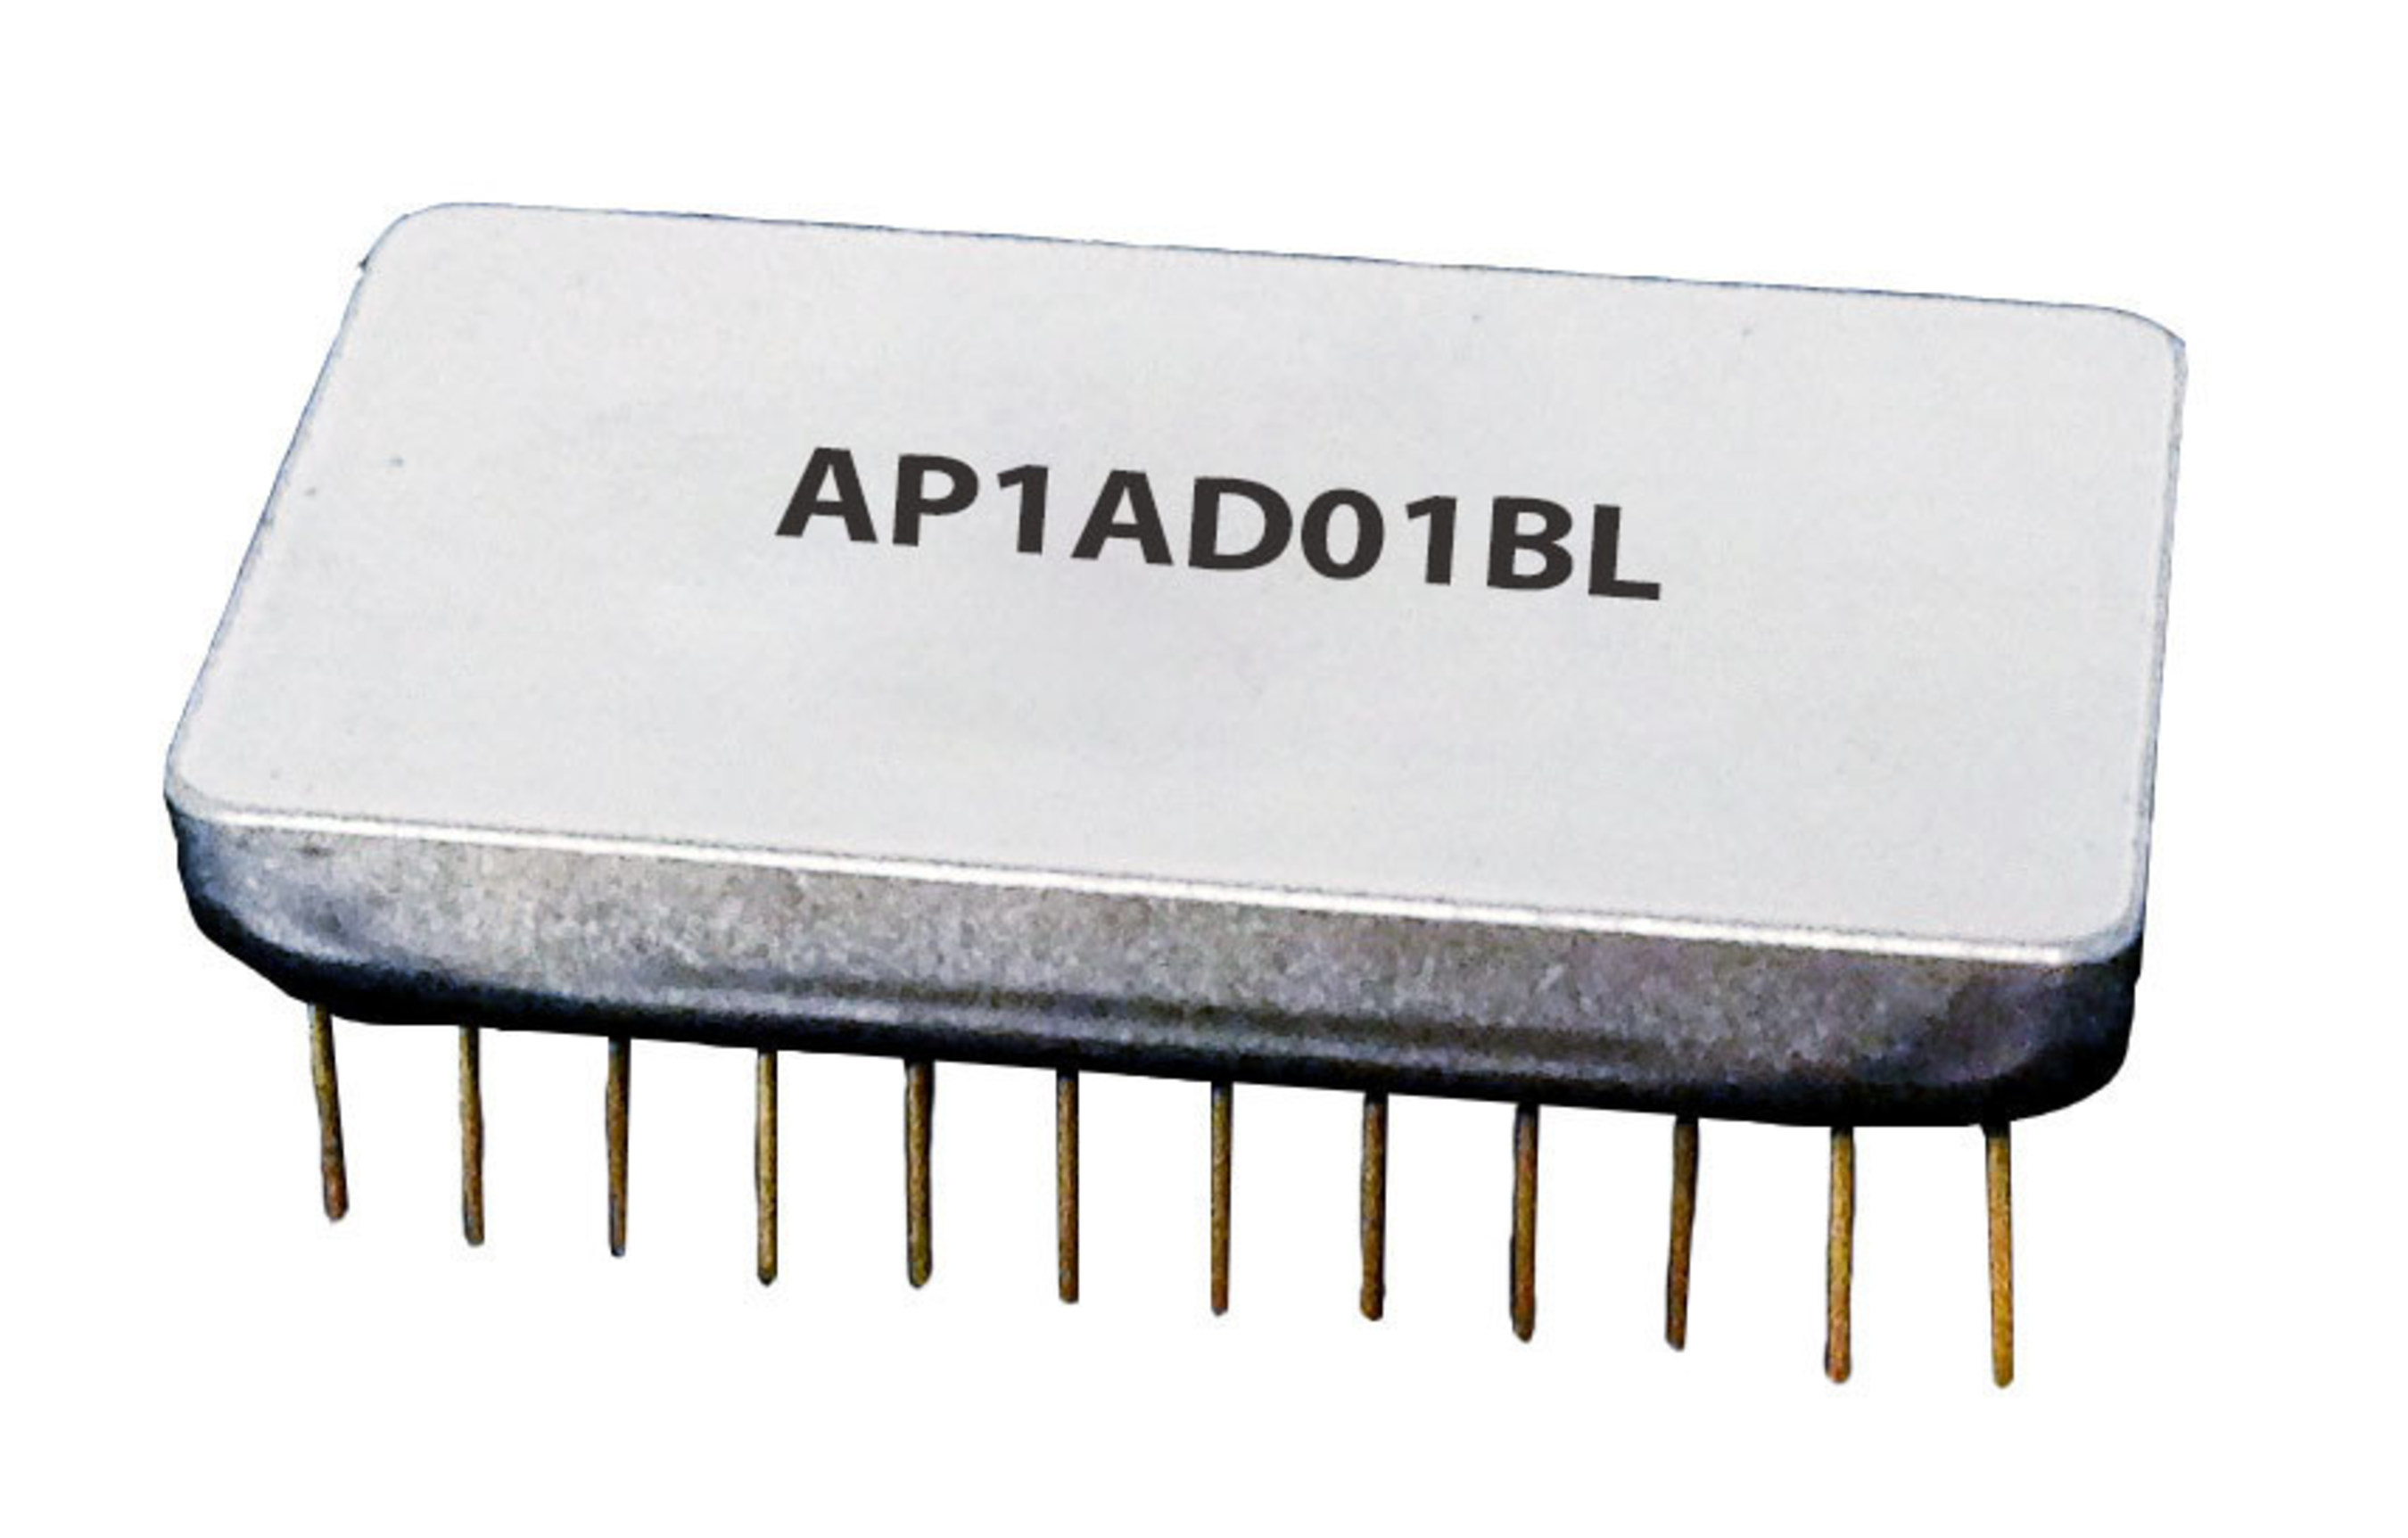 Api Technologies Releases New Radiation Hardened Solid State Relays Relay Latch Up Photo Http Photos Prnh 20150120 170309 With A Distinctive Latching Capability These